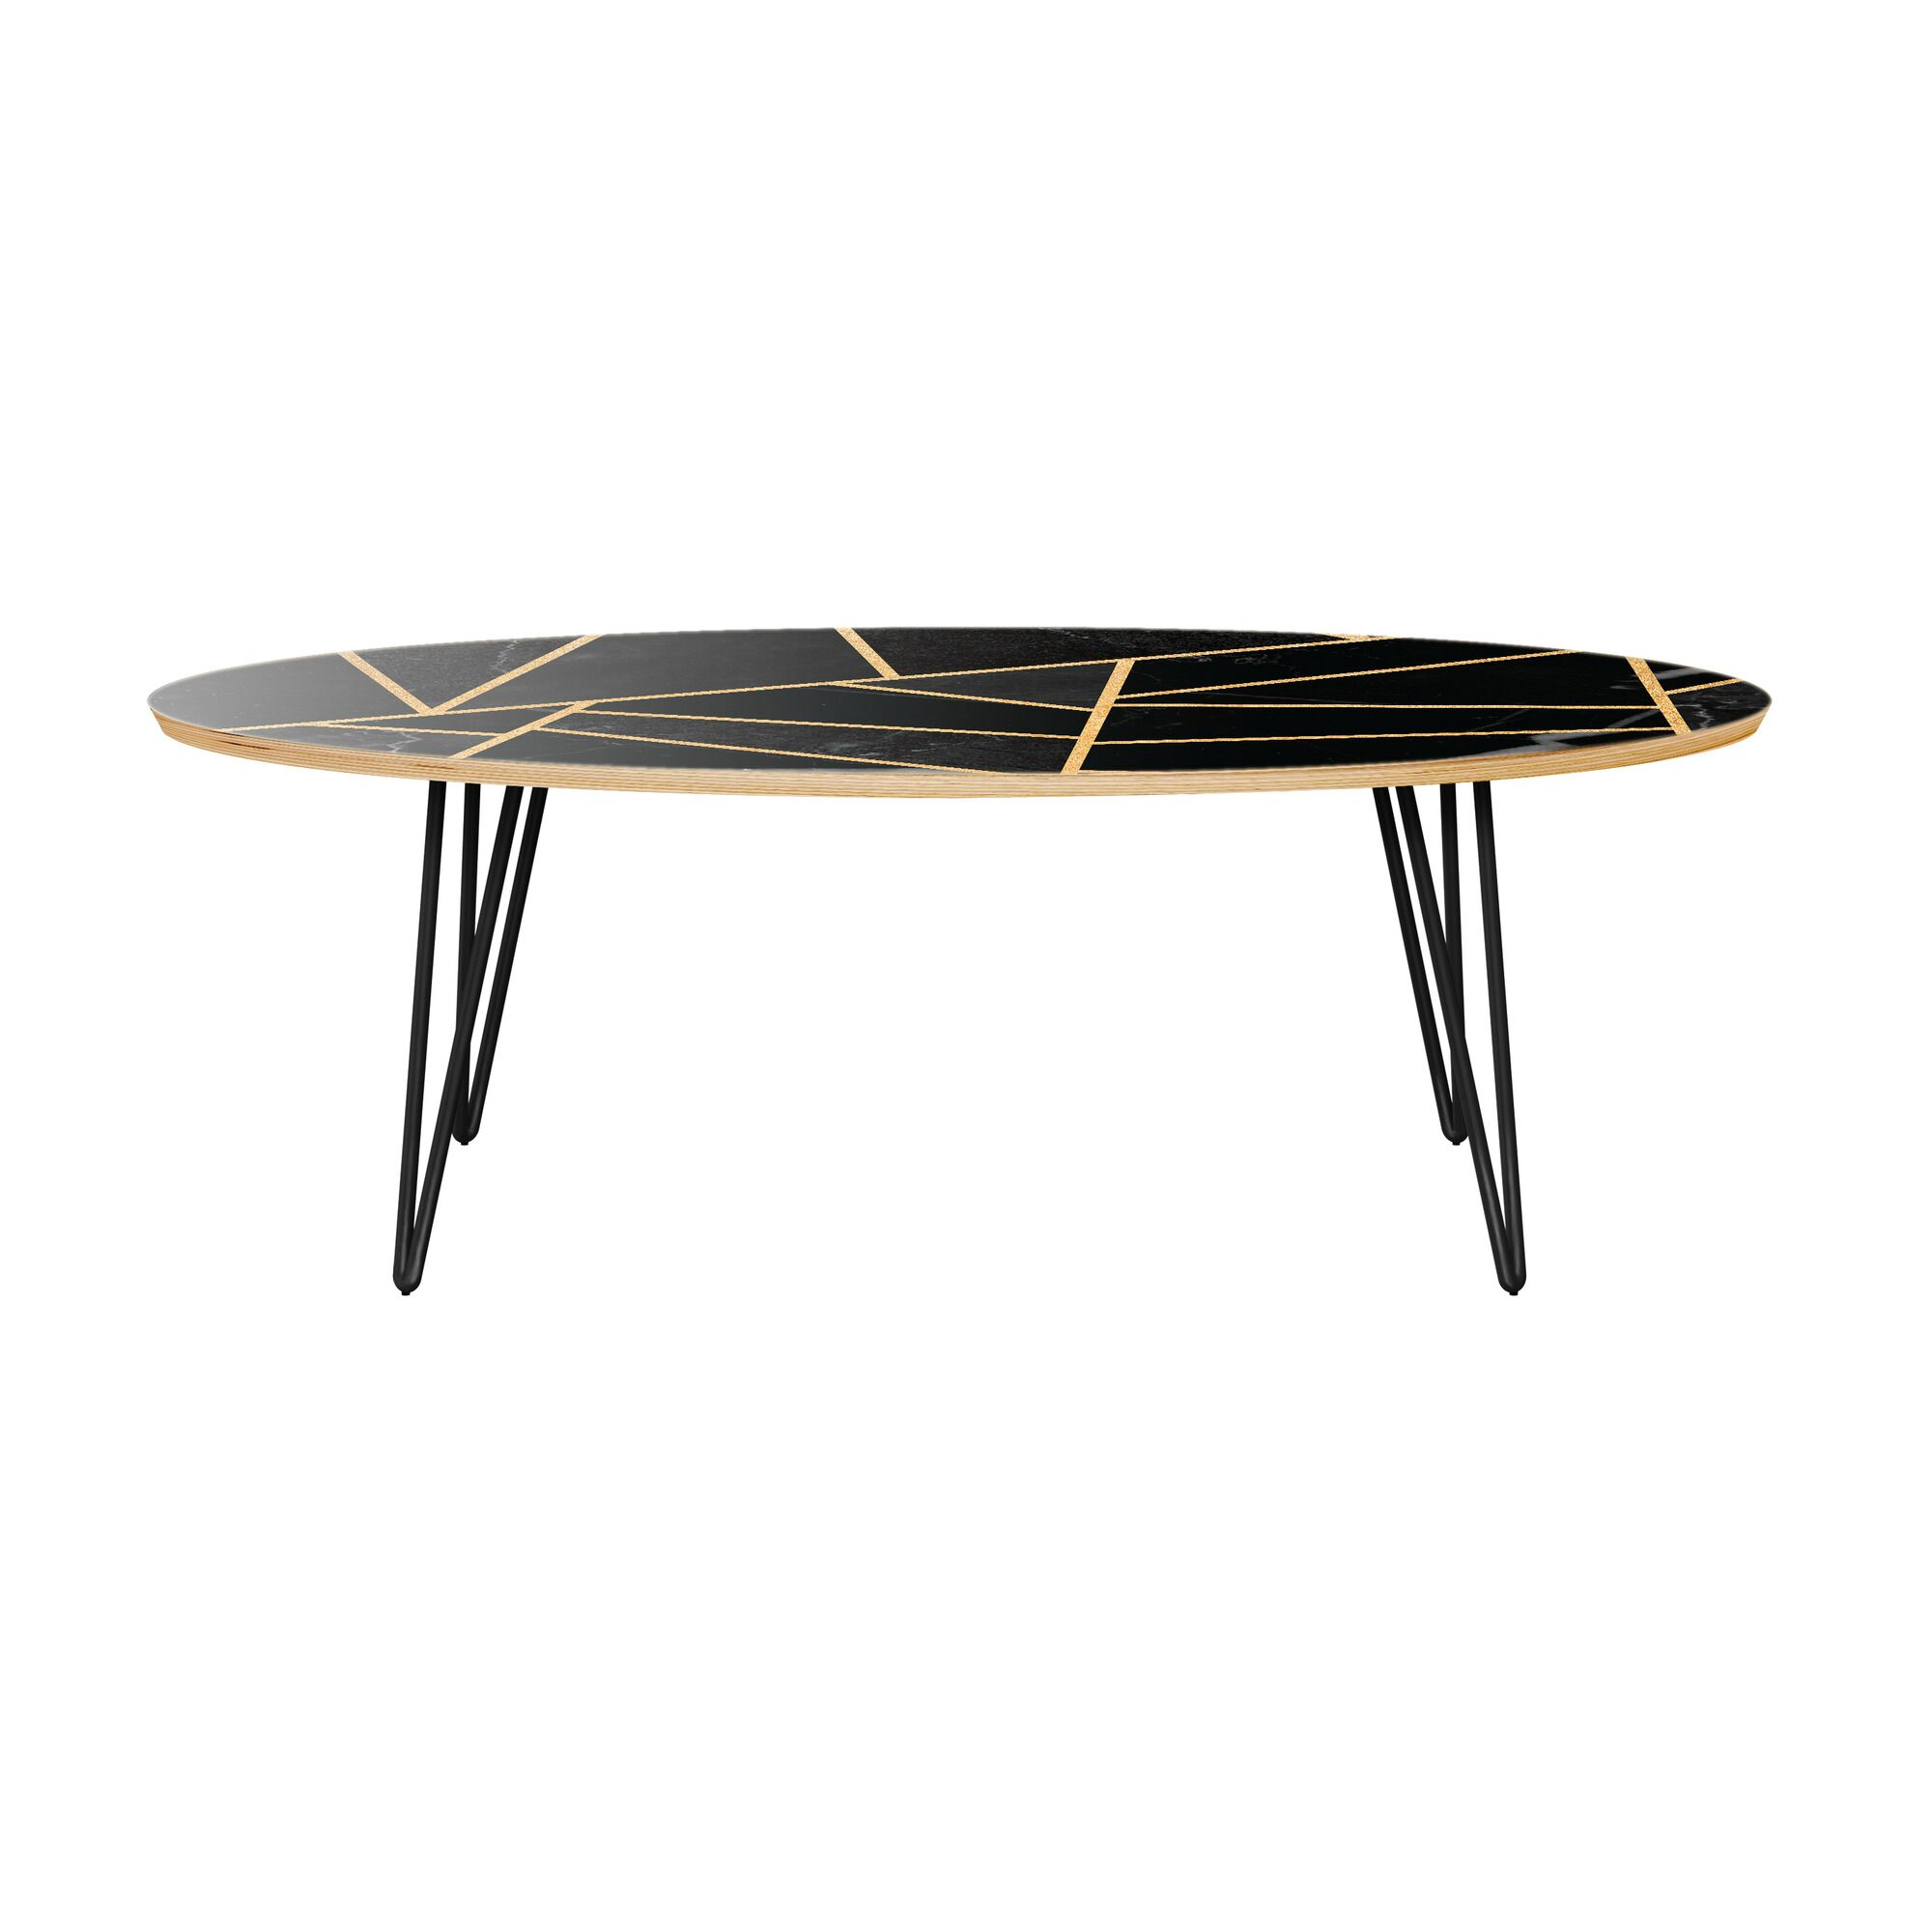 Mcgill Coffee Table Table Base Color: Black, Table Top Color: Natural/Black